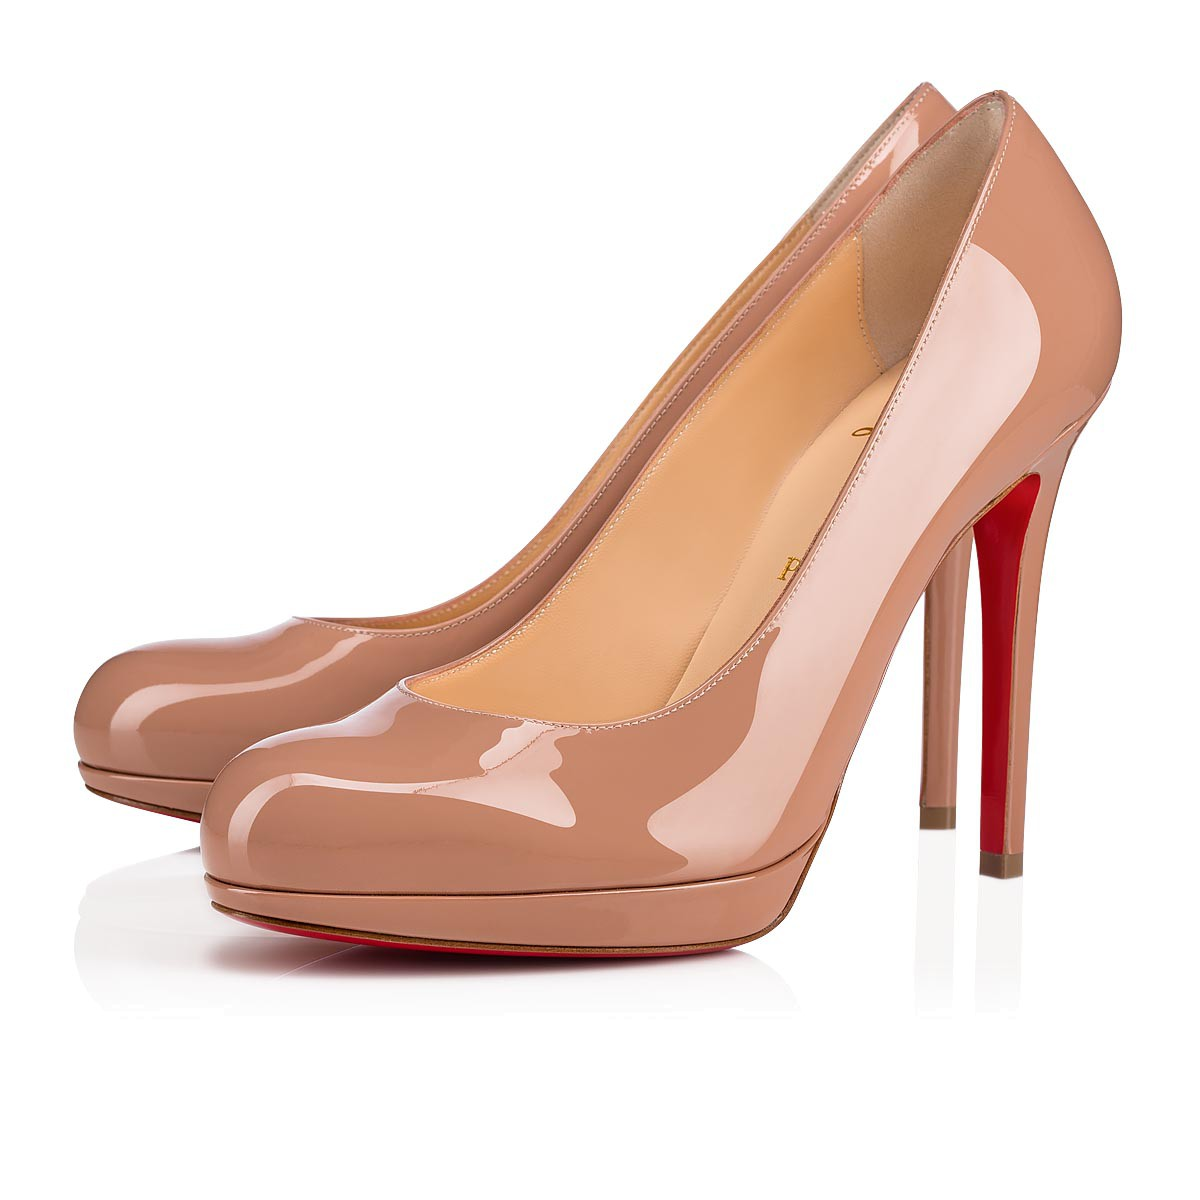 dd870cdf358 New Simple Pump 120 Nude Patent Leather - Women Shoes - Christian Louboutin